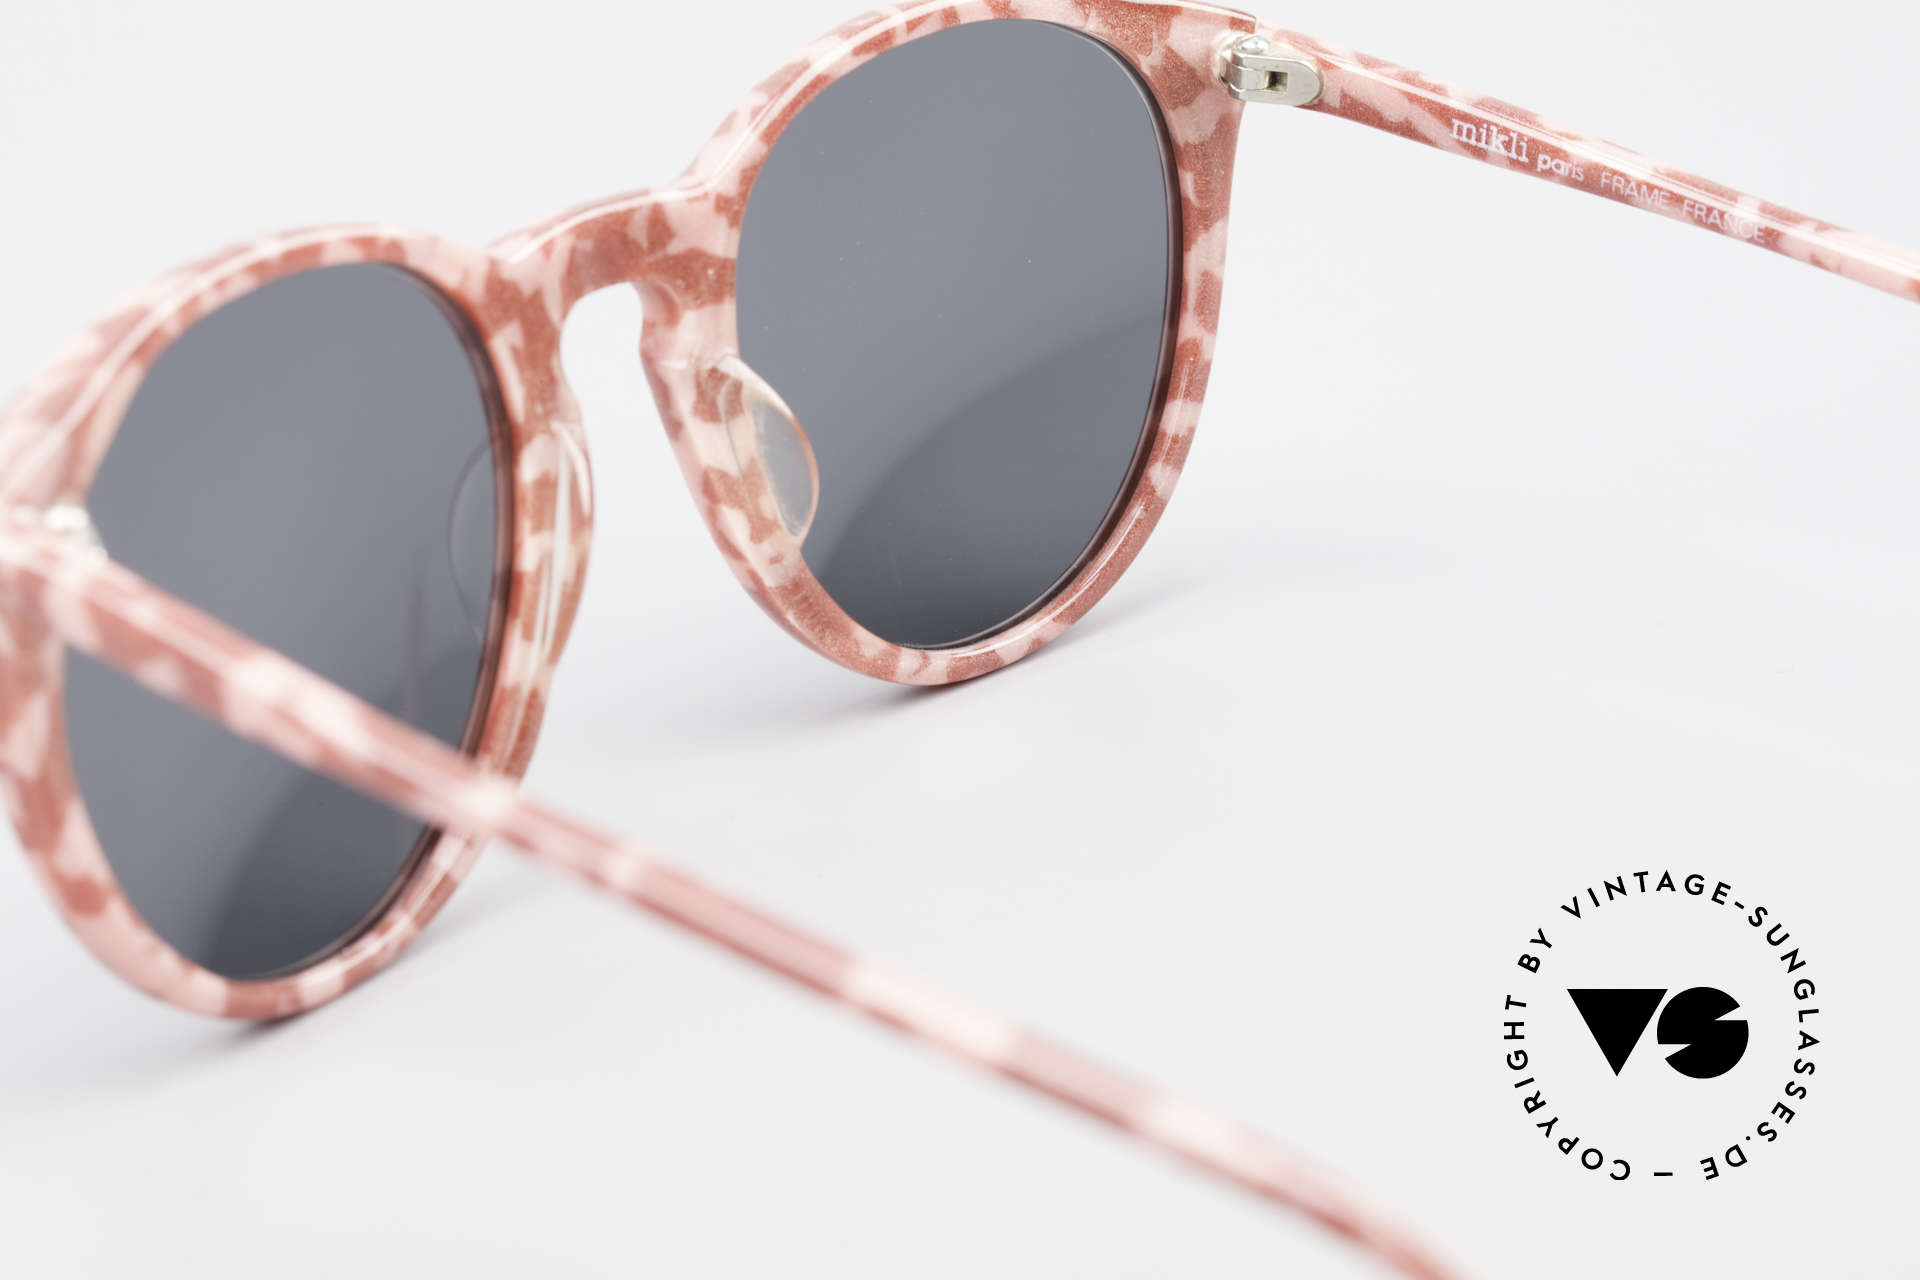 Alain Mikli 901 / 172 Panto Frame Red Pink Marbled, NO RETRO shades, but an old ORIGINAL from 1989, Made for Women